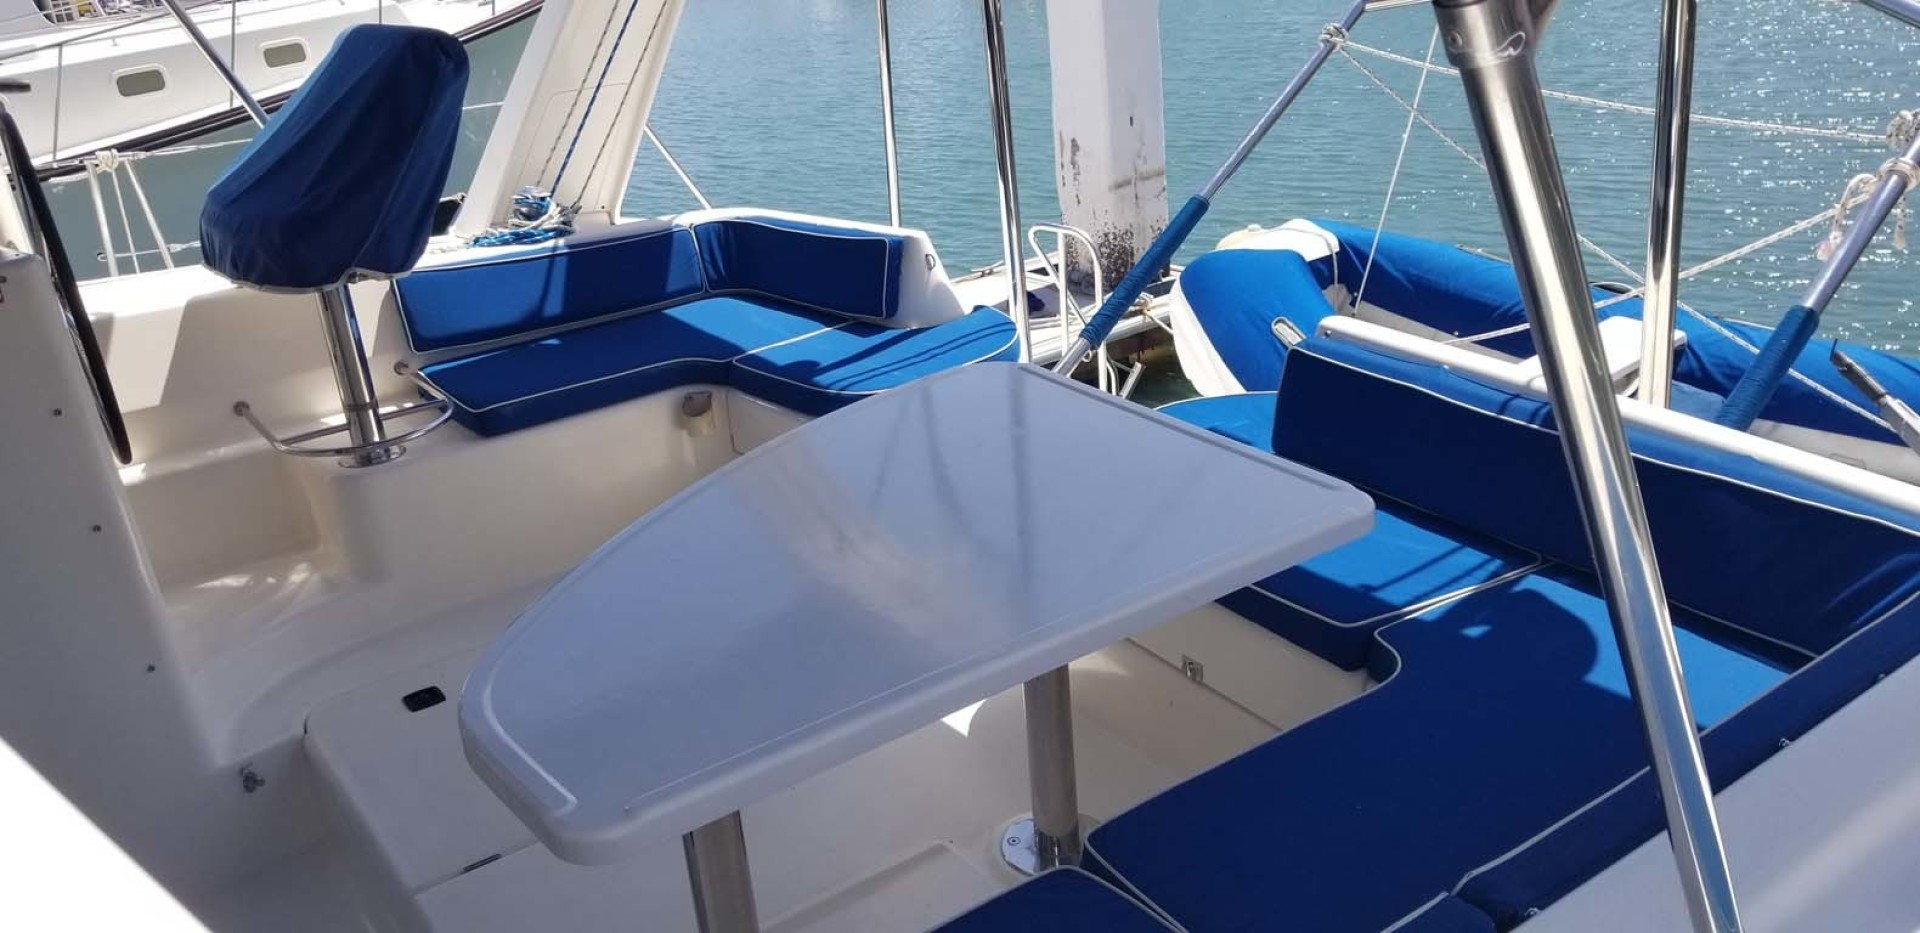 Robertson & Caine-Leopard 38 Catamaran 2000-Jean San Carlos, Sonora-Mexico-Cockpit Seating with Table-1452793 | Thumbnail